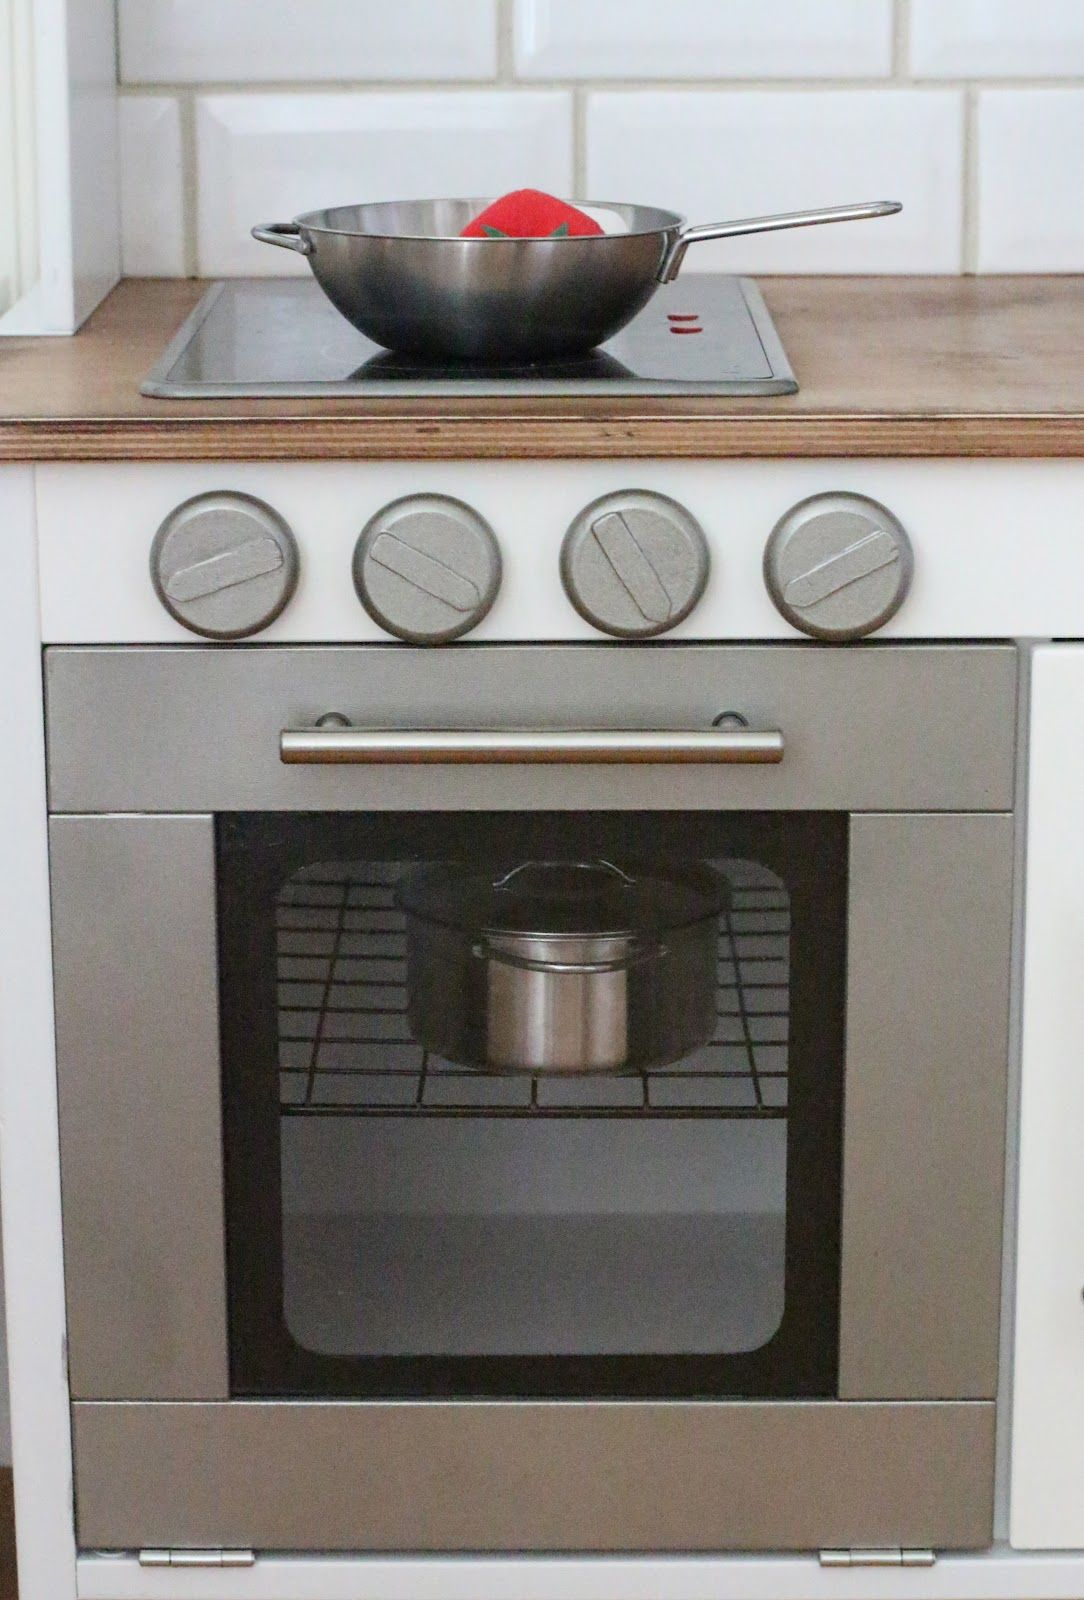 ikea duktig kid s kitchen makeover! make the oven open like a real oven! ff8858f8c178e